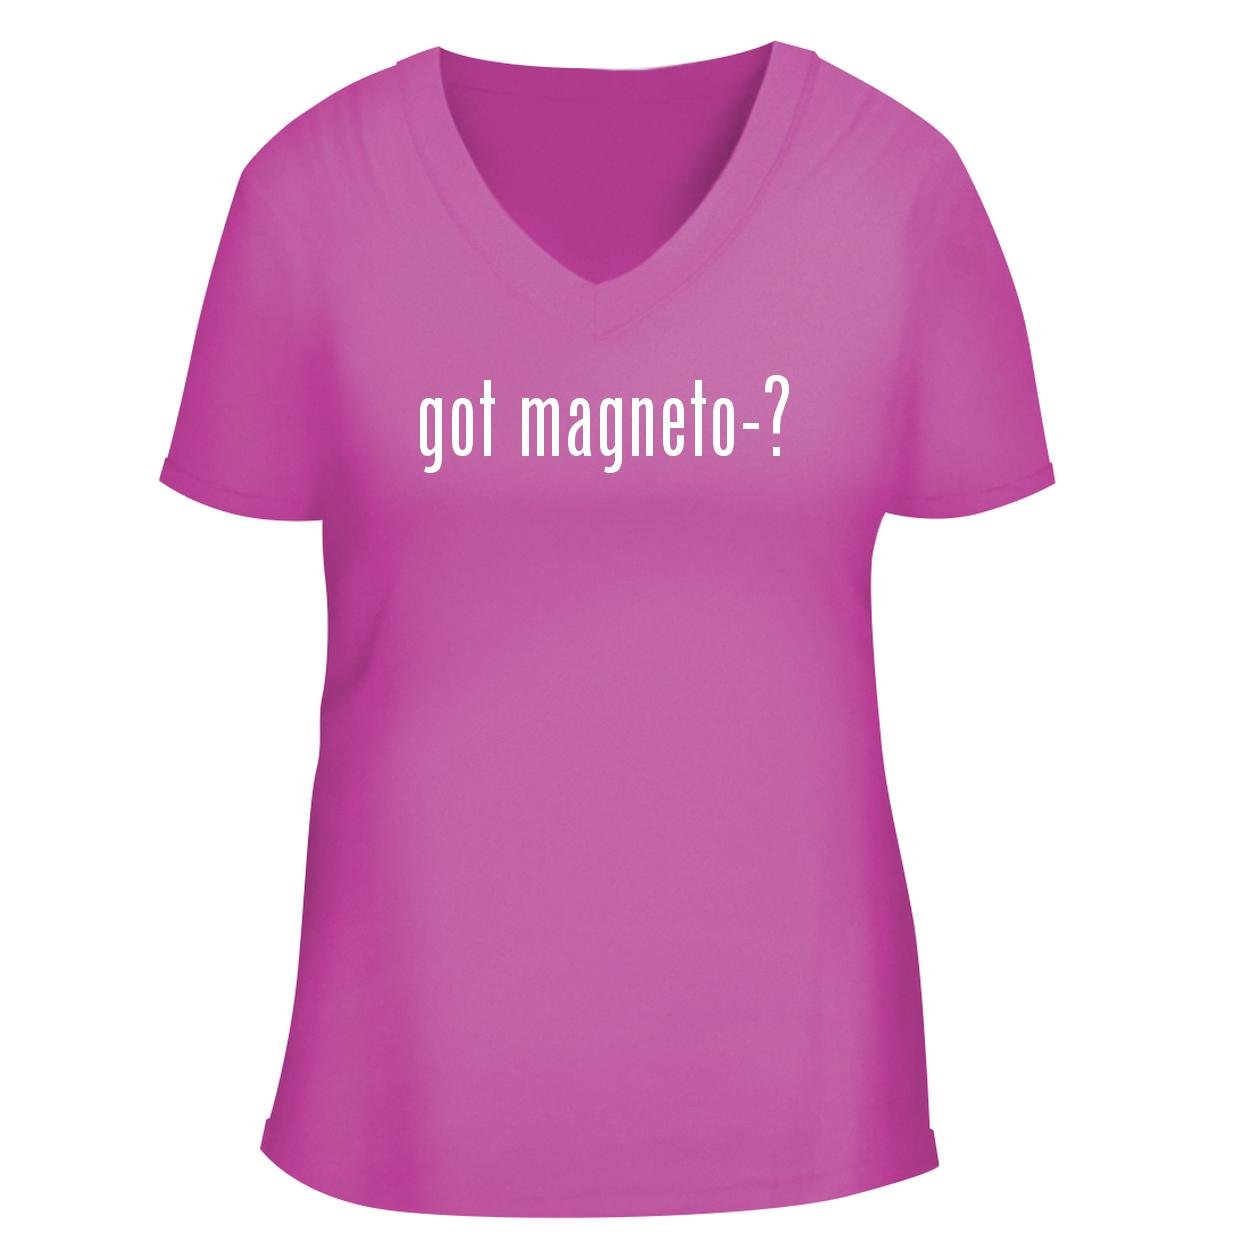 BH Cool Designs got Magneto-? - Cute Women's V Neck Graphic Tee, Fuchsia, X-Large